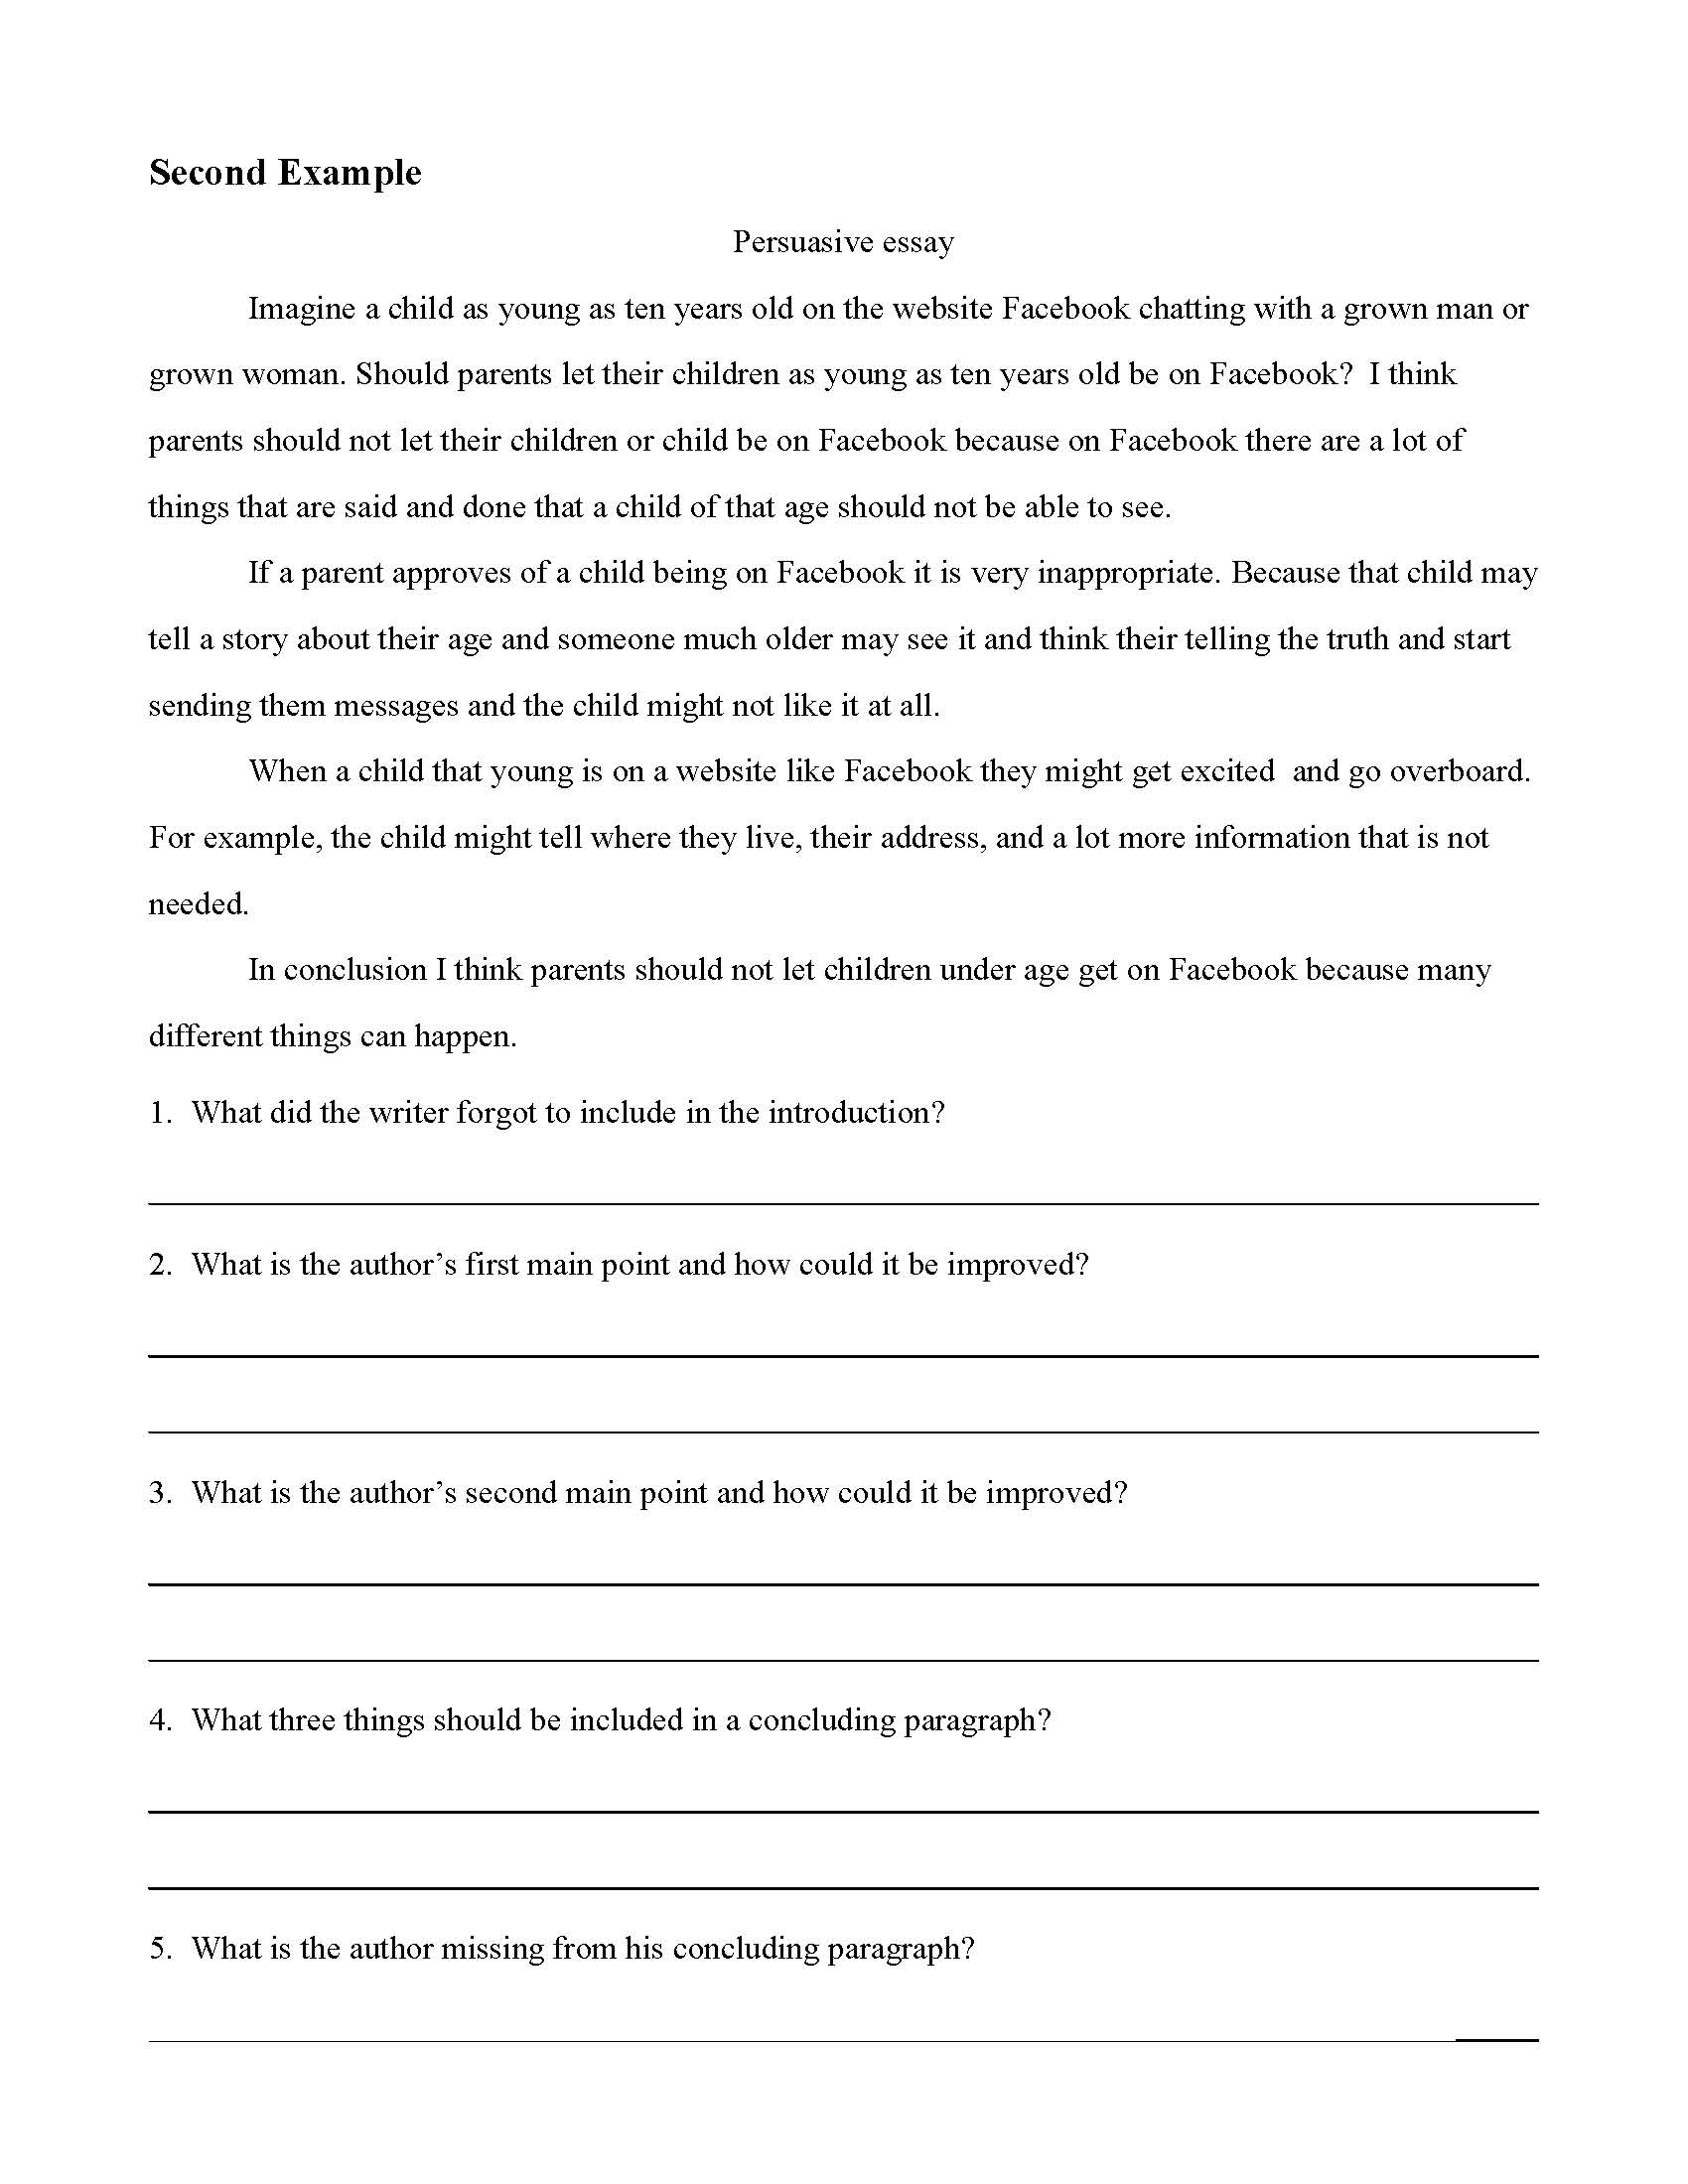 007 Persuasive Essay Examples Example Of Stupendous A Argumentative Bullying On Legalizing Weed Outline Full